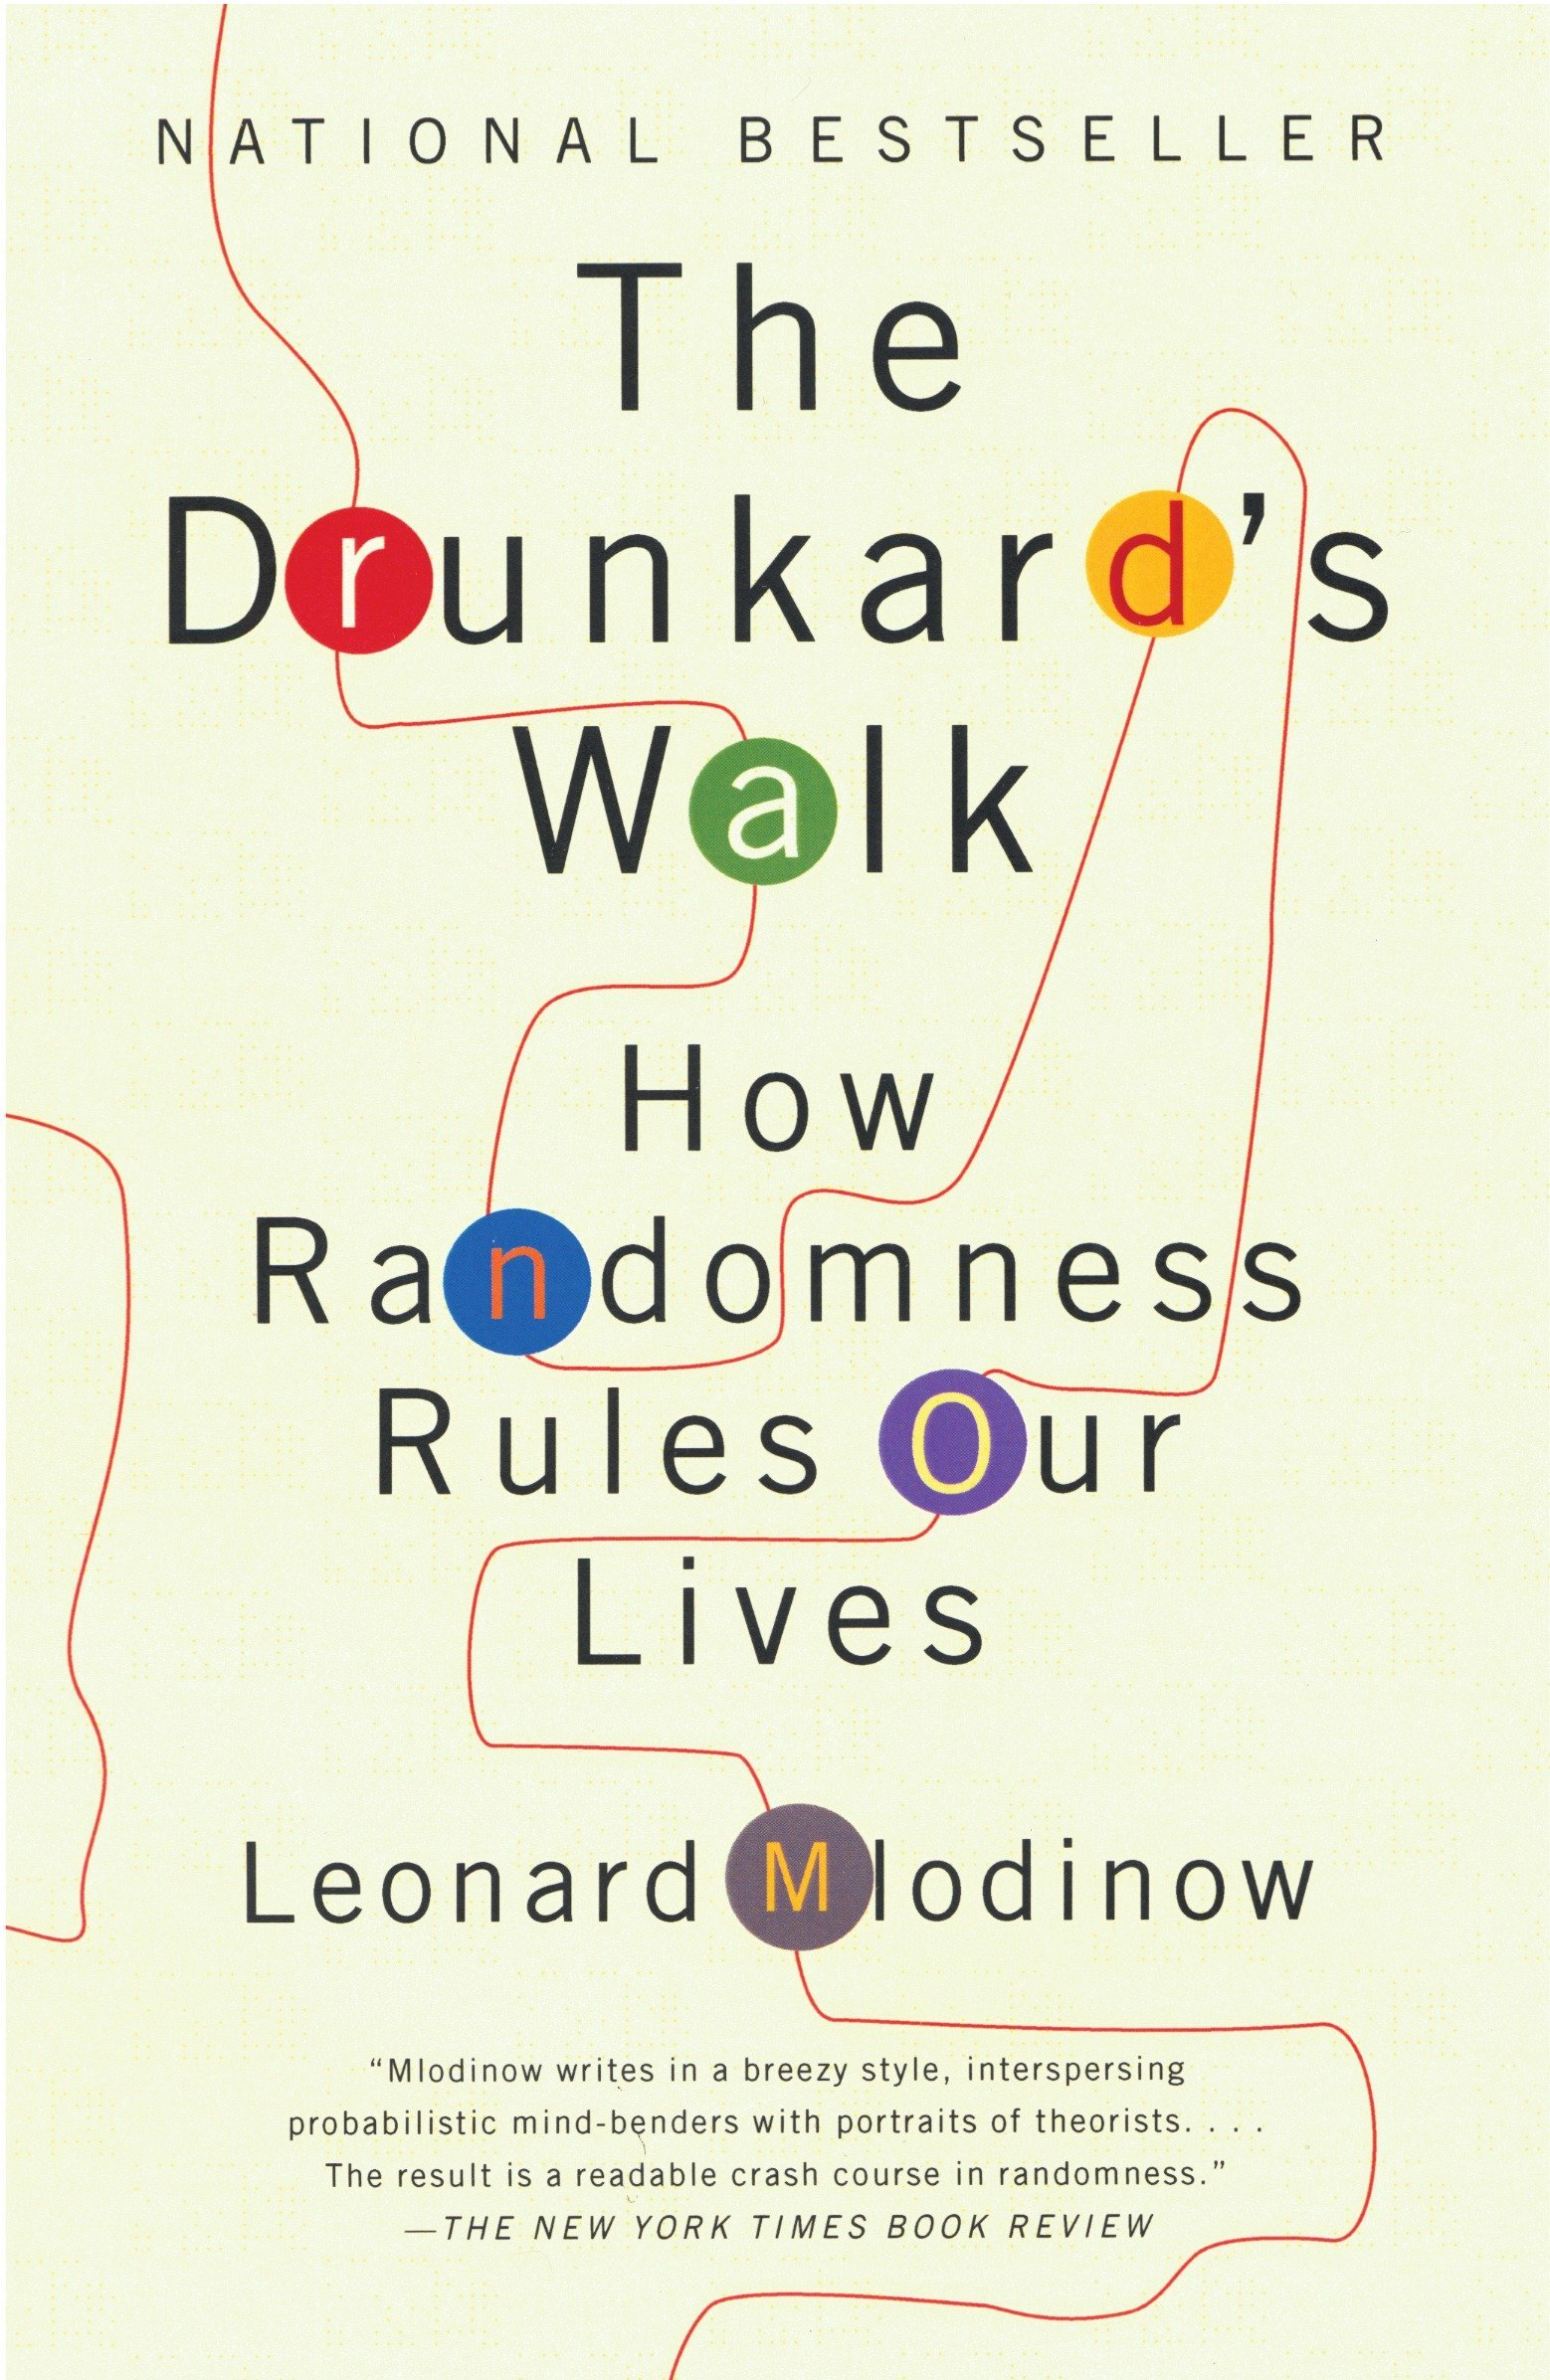 The Drunkard's Walk, Leonard Mlodinow